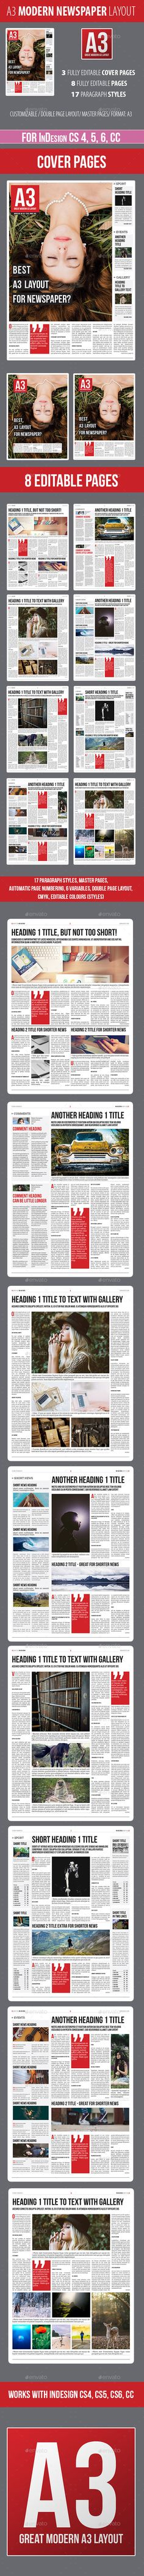 A3 - Modern Newspaper Layout for InDesign by LeszQ Watch live demo https://issuu.com/indesign_newspaper_layout/docs/a3_-_modern_newspaper_layout_for_inAbout Layout includes 11 pages